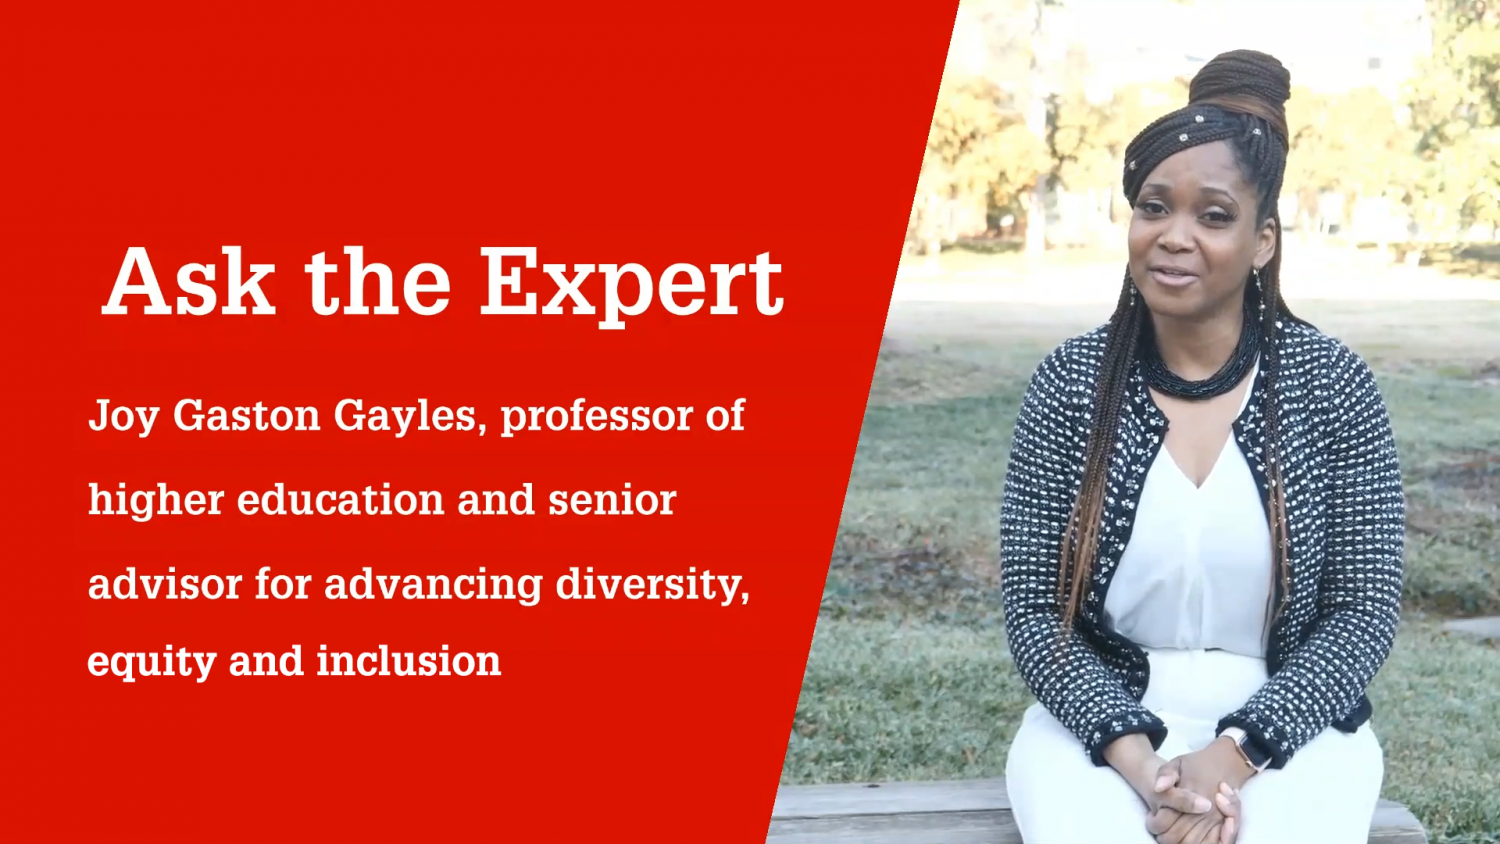 Professor Joy Gaston Gayles explains how educators can promote equity in their schools